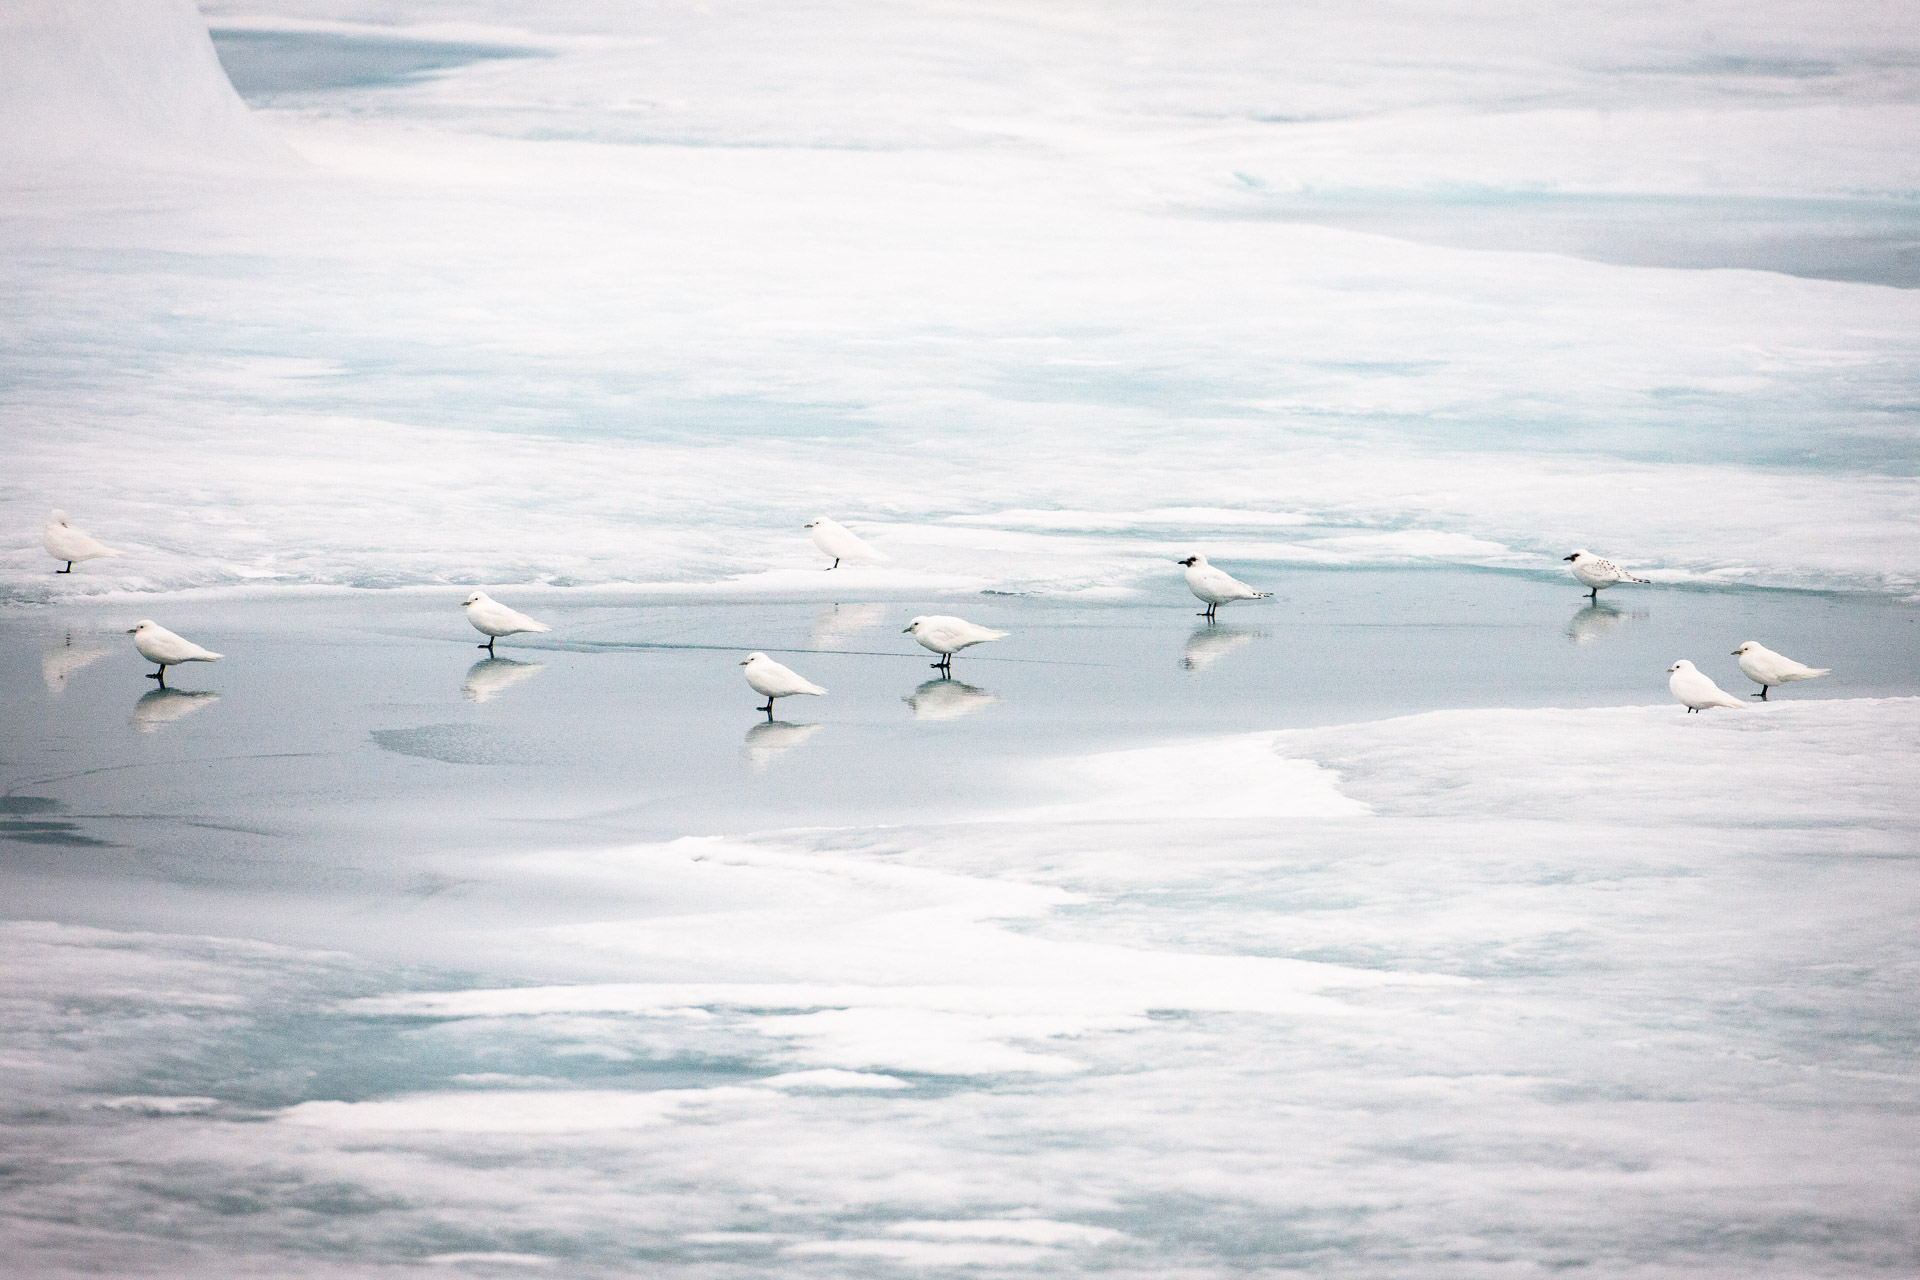 ivory gulls on a sea ice floe in the Arctic